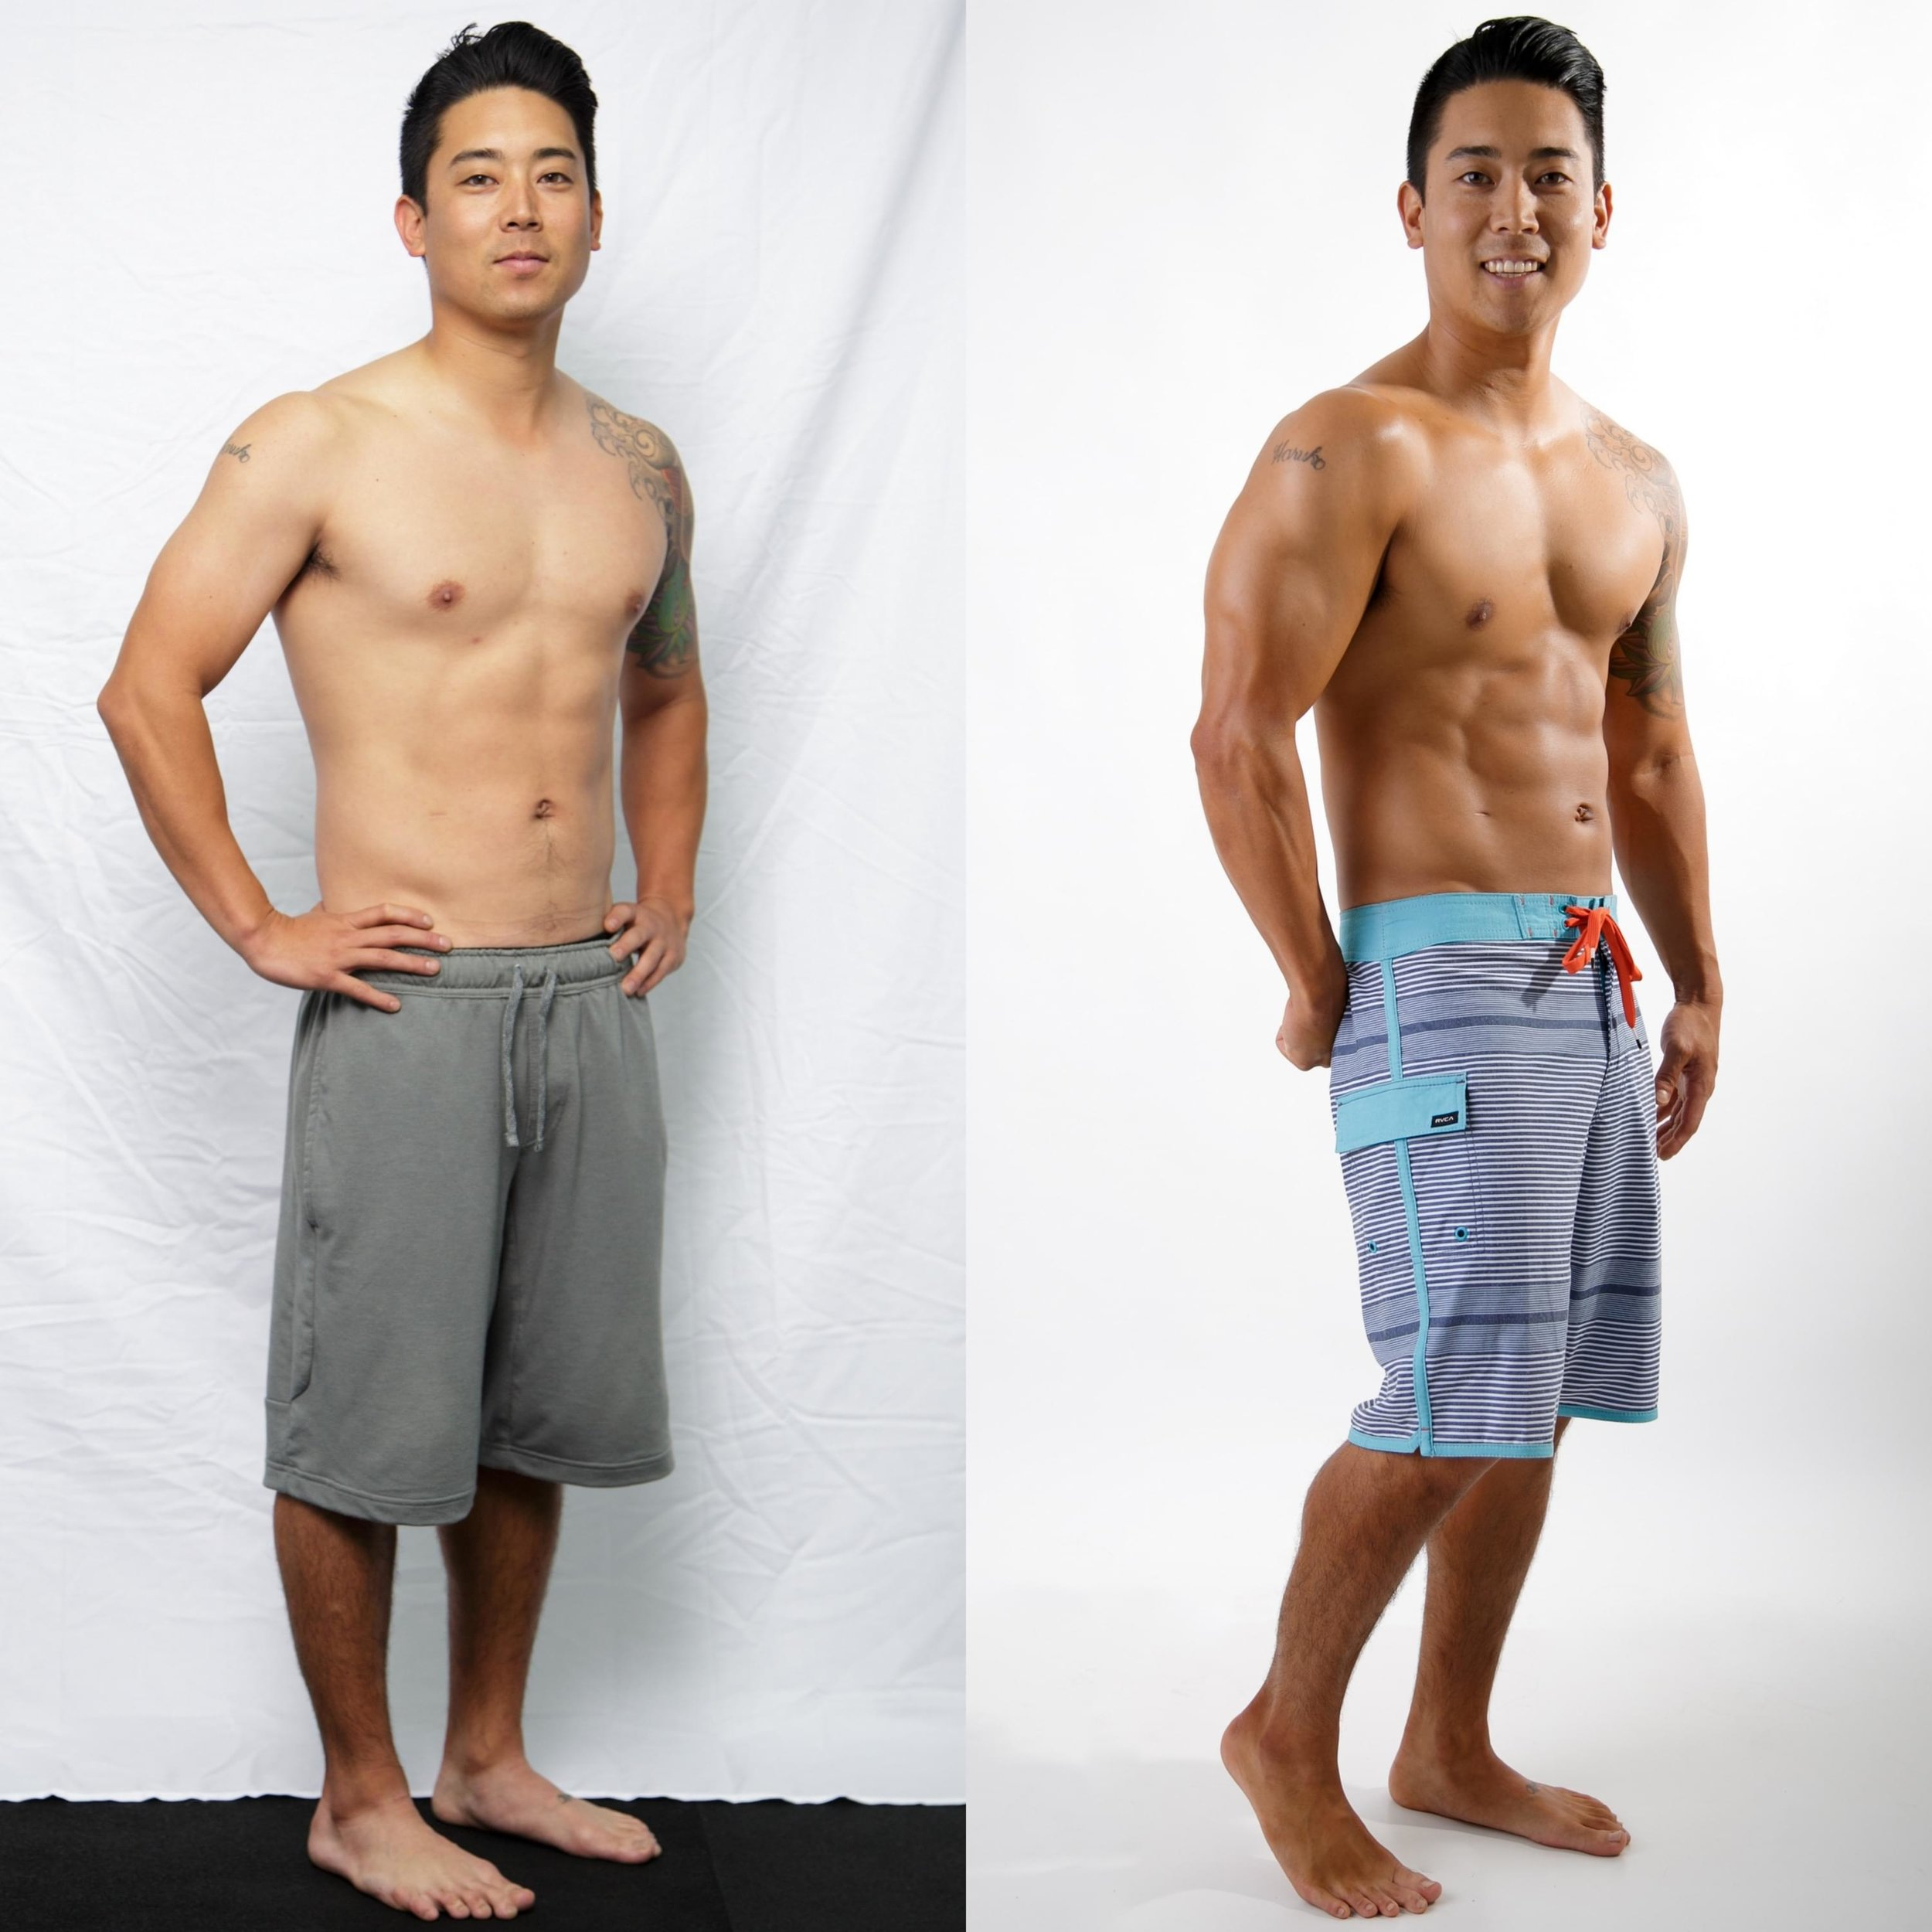 Think your days of being an ATHLETE are over? Read Allen's Story... - In college, I played baseball and lifted weights. Moving home, I ate fast food and gained 15 pounds. I wanted to be fit again. My turning point was feeling my love handles fold while swinging a golf club! I started eating cleaner and started CrossFit. The TRANSFORM Challenge was awesome! My main motivation was proving I had the discipline to do it. I didn't cheat on meals. Once I got the routine it was simple. I feel fit, strong, coordinated, and athletic again. Now it's a lifestyle.-Allen Komori